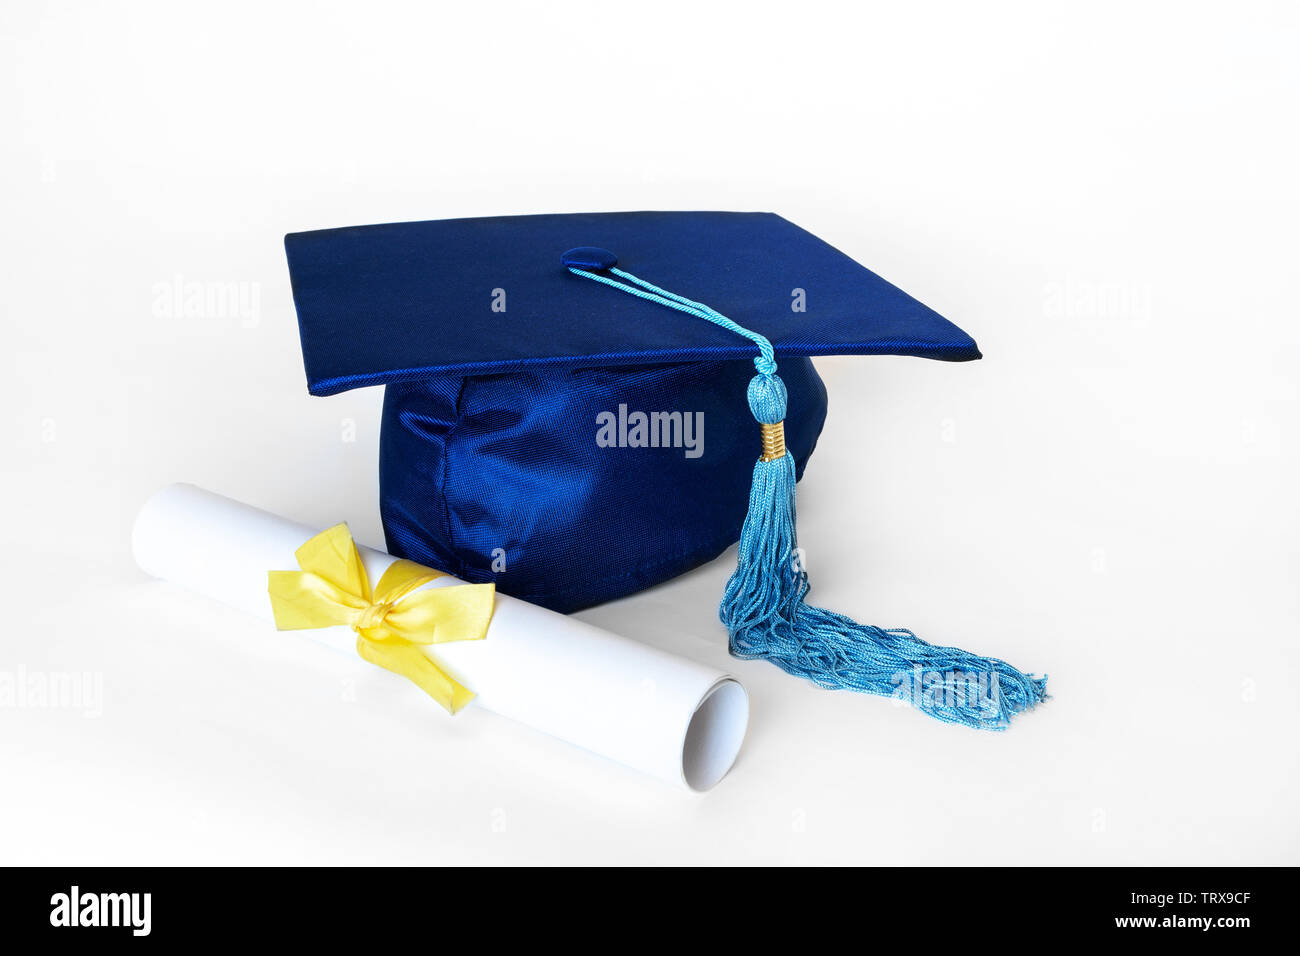 Blue graduation cap or mortarboard with blue tassel and diploma with yellow ribbon, isolated on white background. - Stock Image